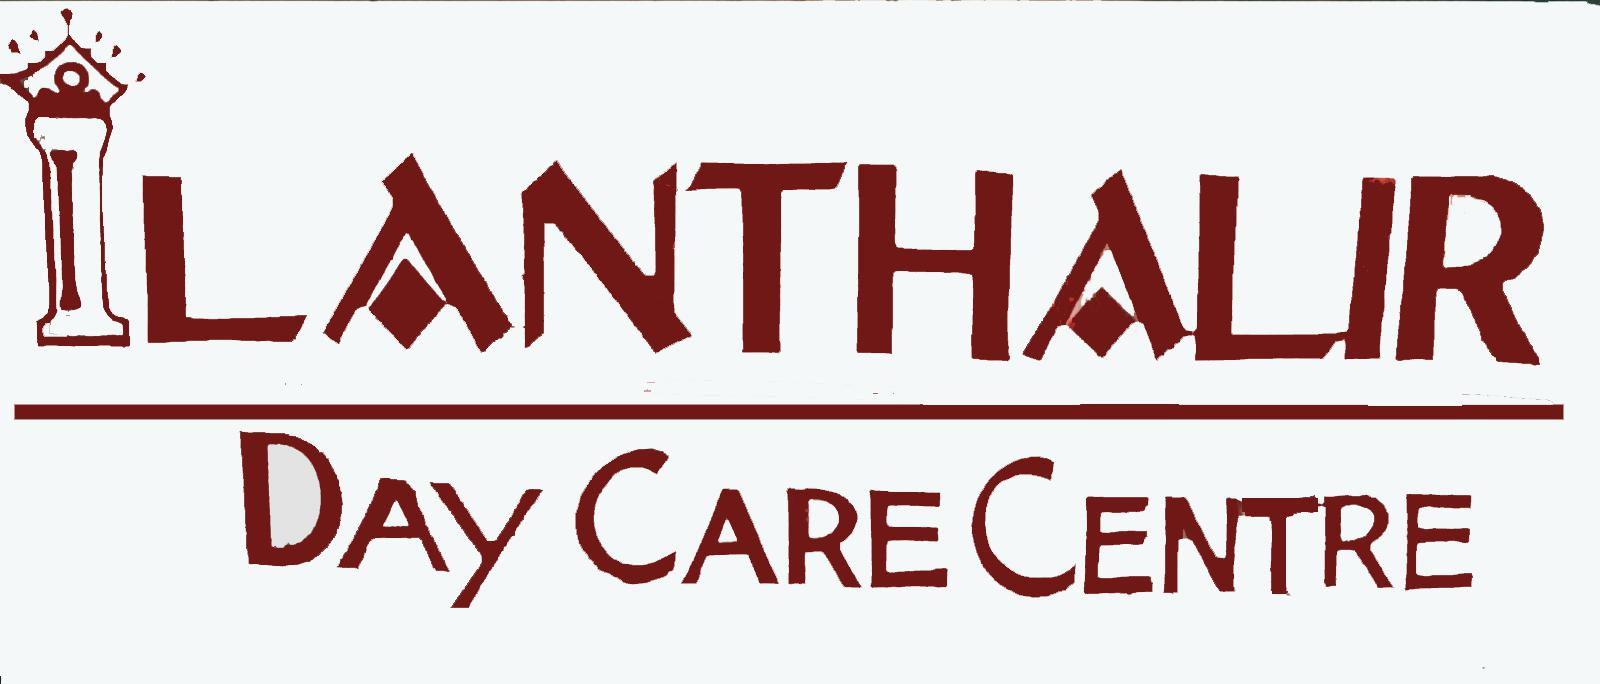 ilanthalir day care centre, Ilanthalir Day Care Centre